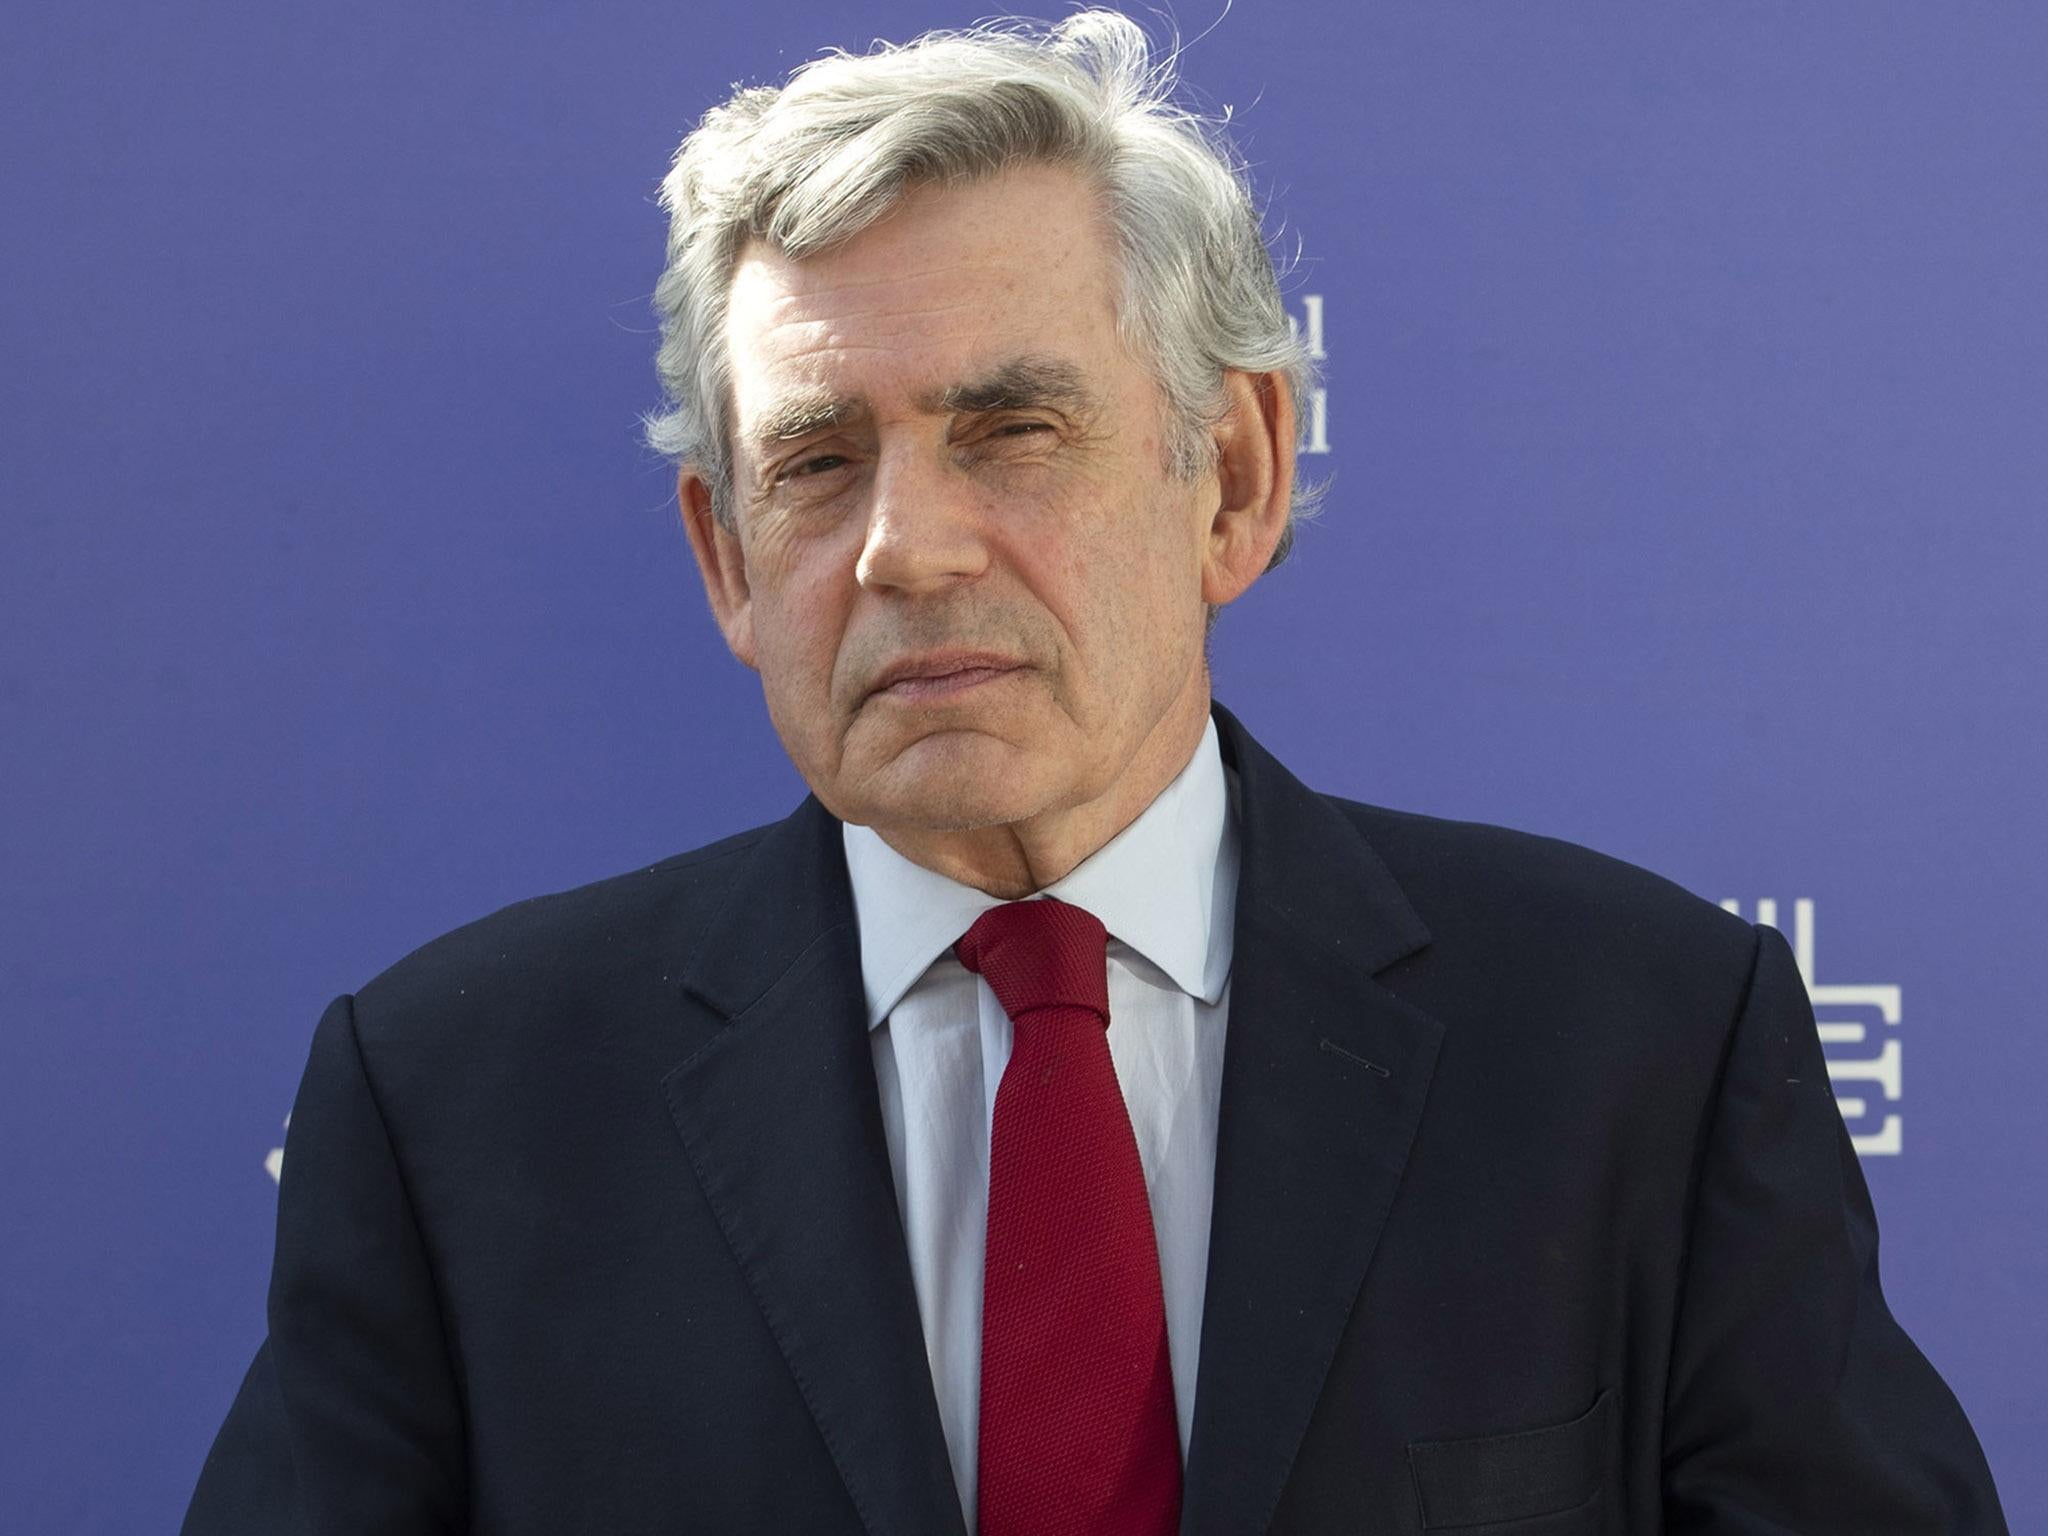 gordon brown edinburgh 20 Things You Probably Never Knew About Tom Holland